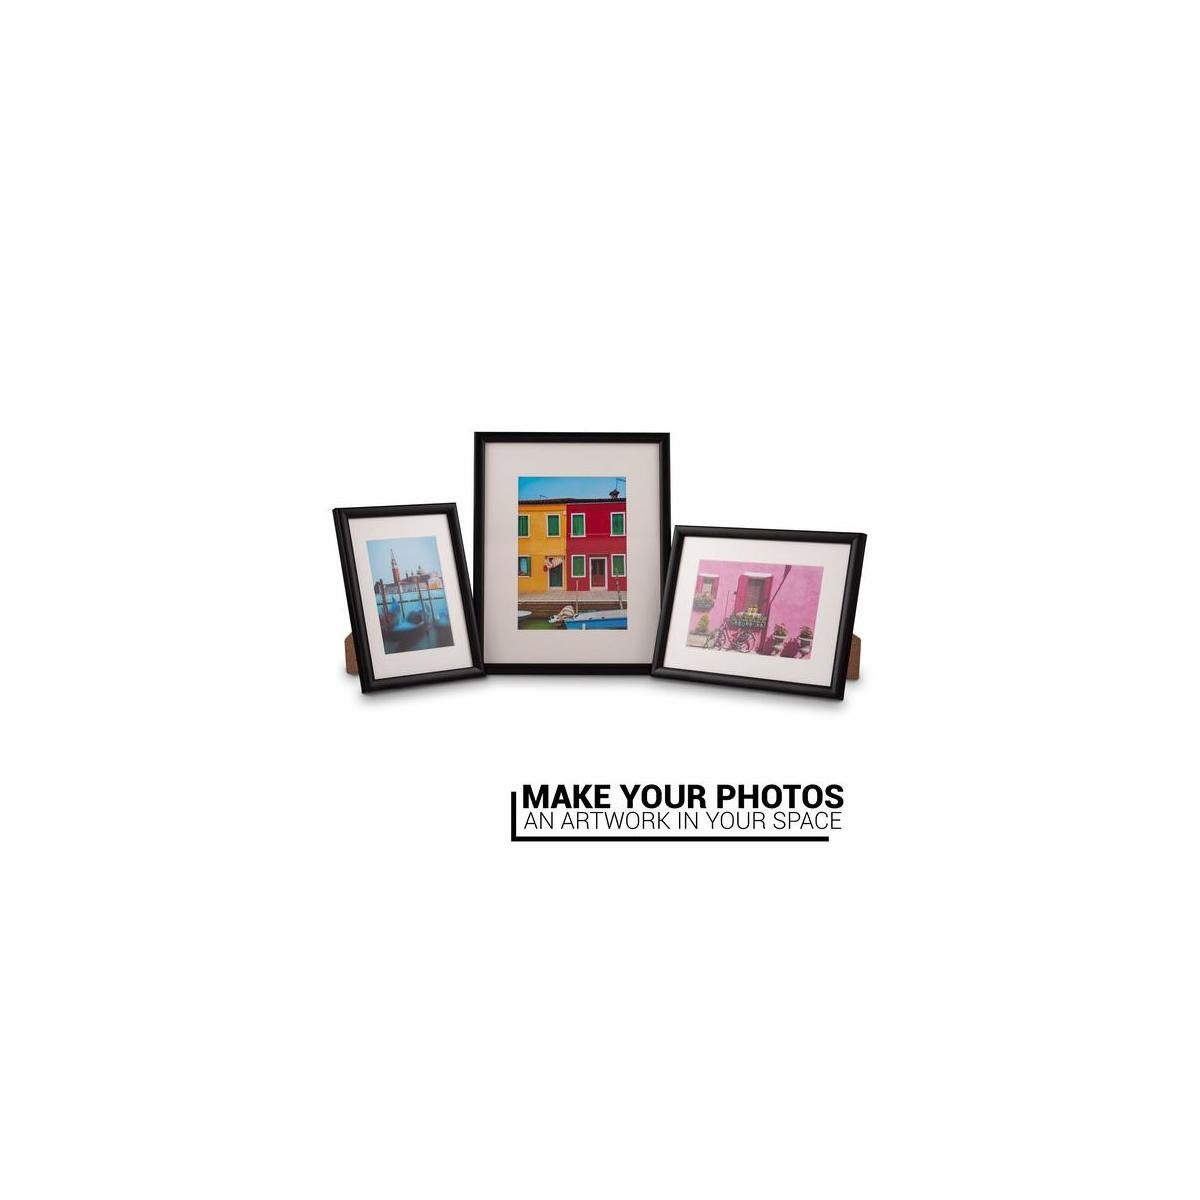 Picture Frame Photo Frames Size Fits 4x6 inch Photos.Picture Frame Black Made of Solid Wood Glass Ready to Hang The Frame on The Wall or Put on Desktop Horizontal Vertical